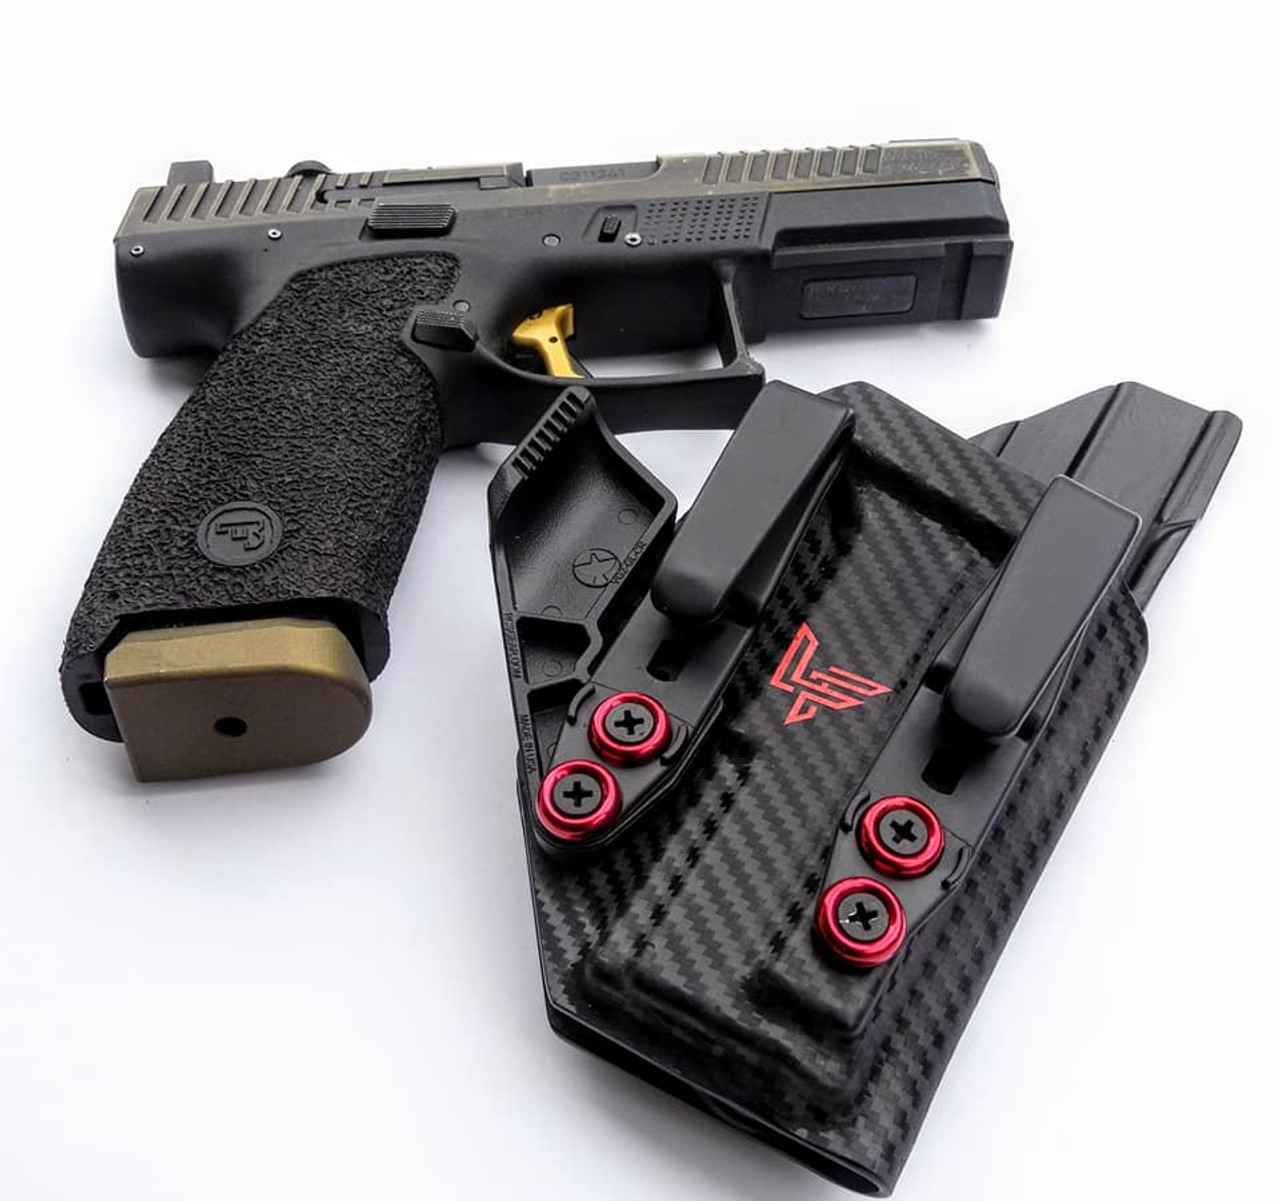 CZ P10c Carbon Fiber Appendix Carry Holster